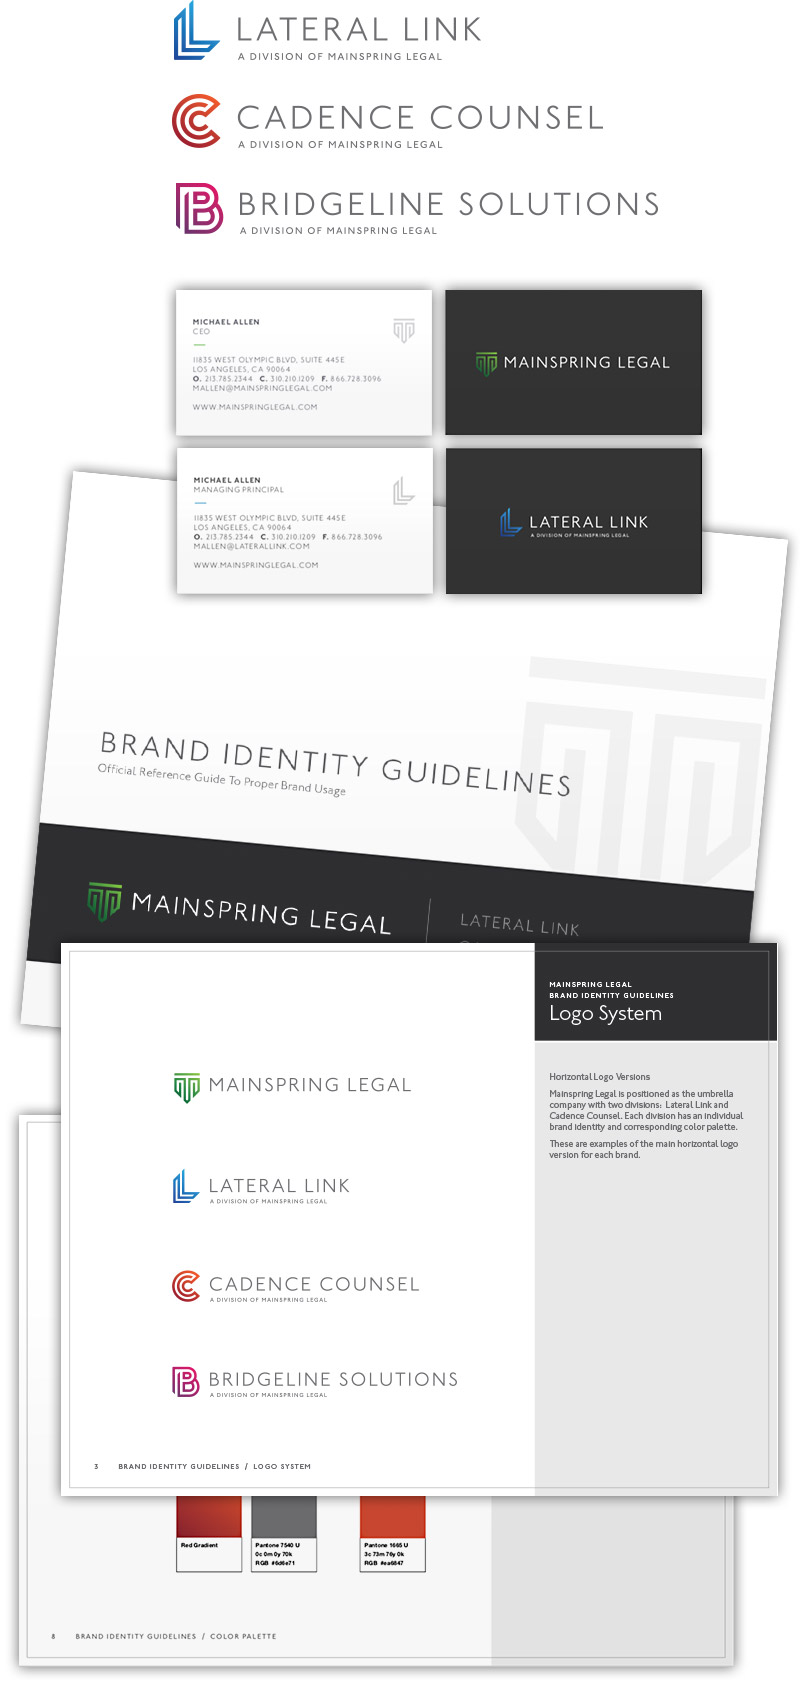 Mainspring Legal - Brand Strategy & Development, Brand Guidelines, Website Design & Development, Marketing, Creative Direction